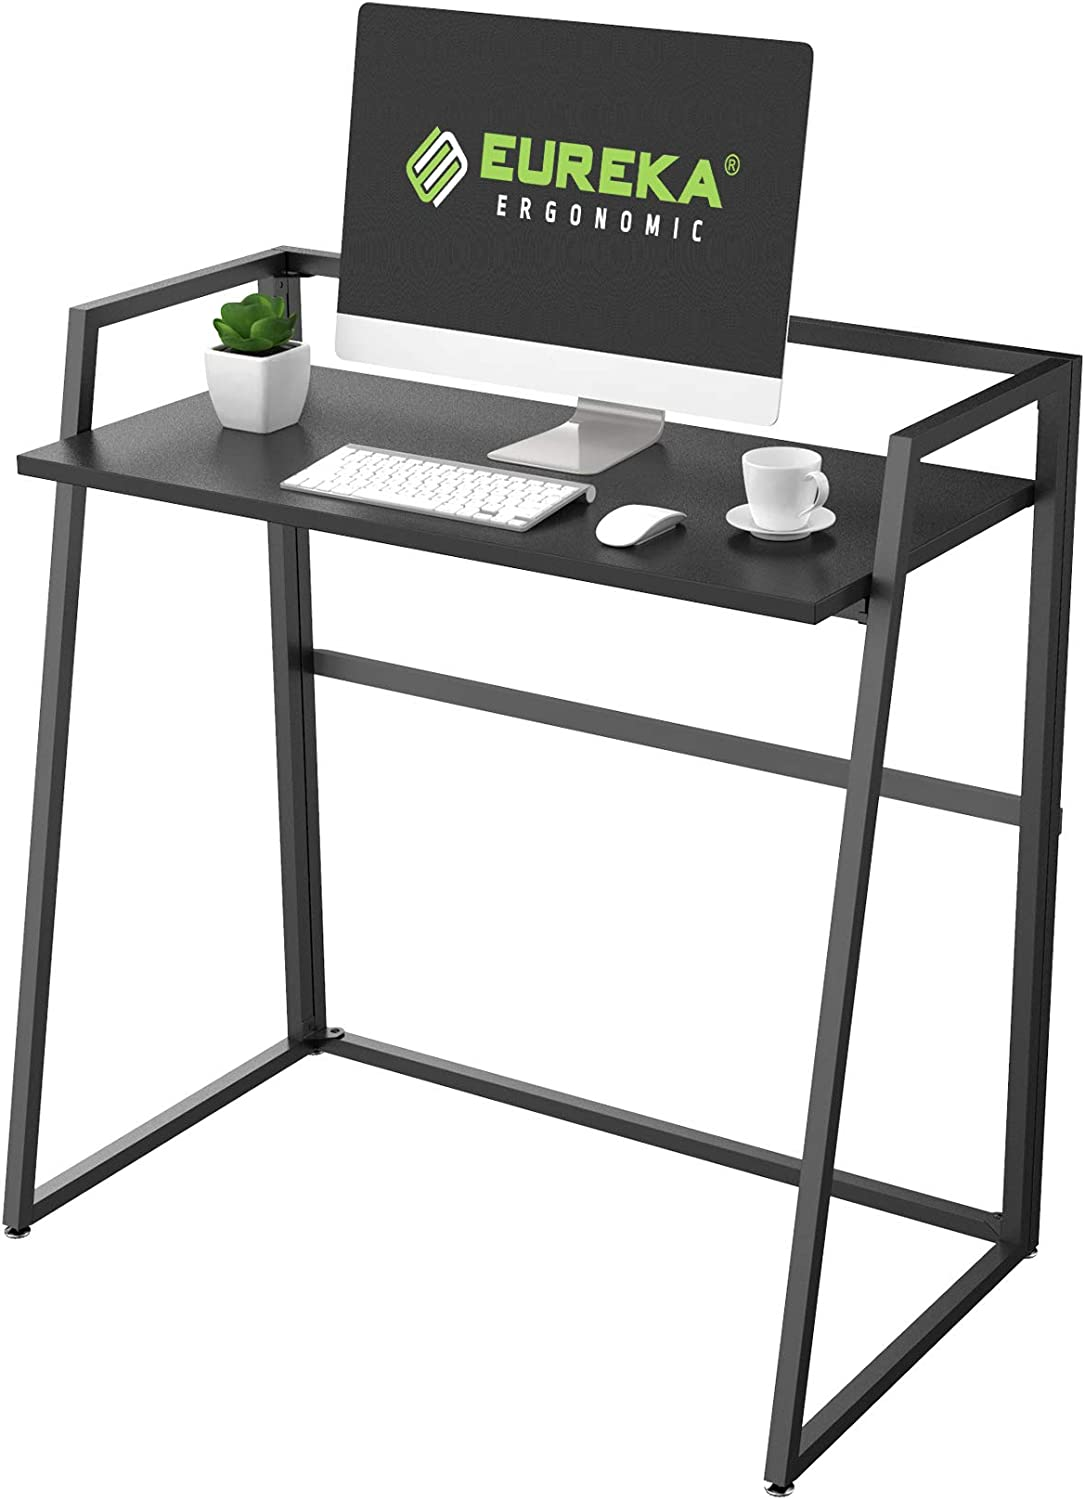 EUREKA ERGONOMIC Modern Folding Computer Desk Teen Student Dorm Study Desks 33-inch Fold up Desk, Easy to be Folded or Unfolded for Writing, Laptop Working and Crafting, Fits Home Office, Black